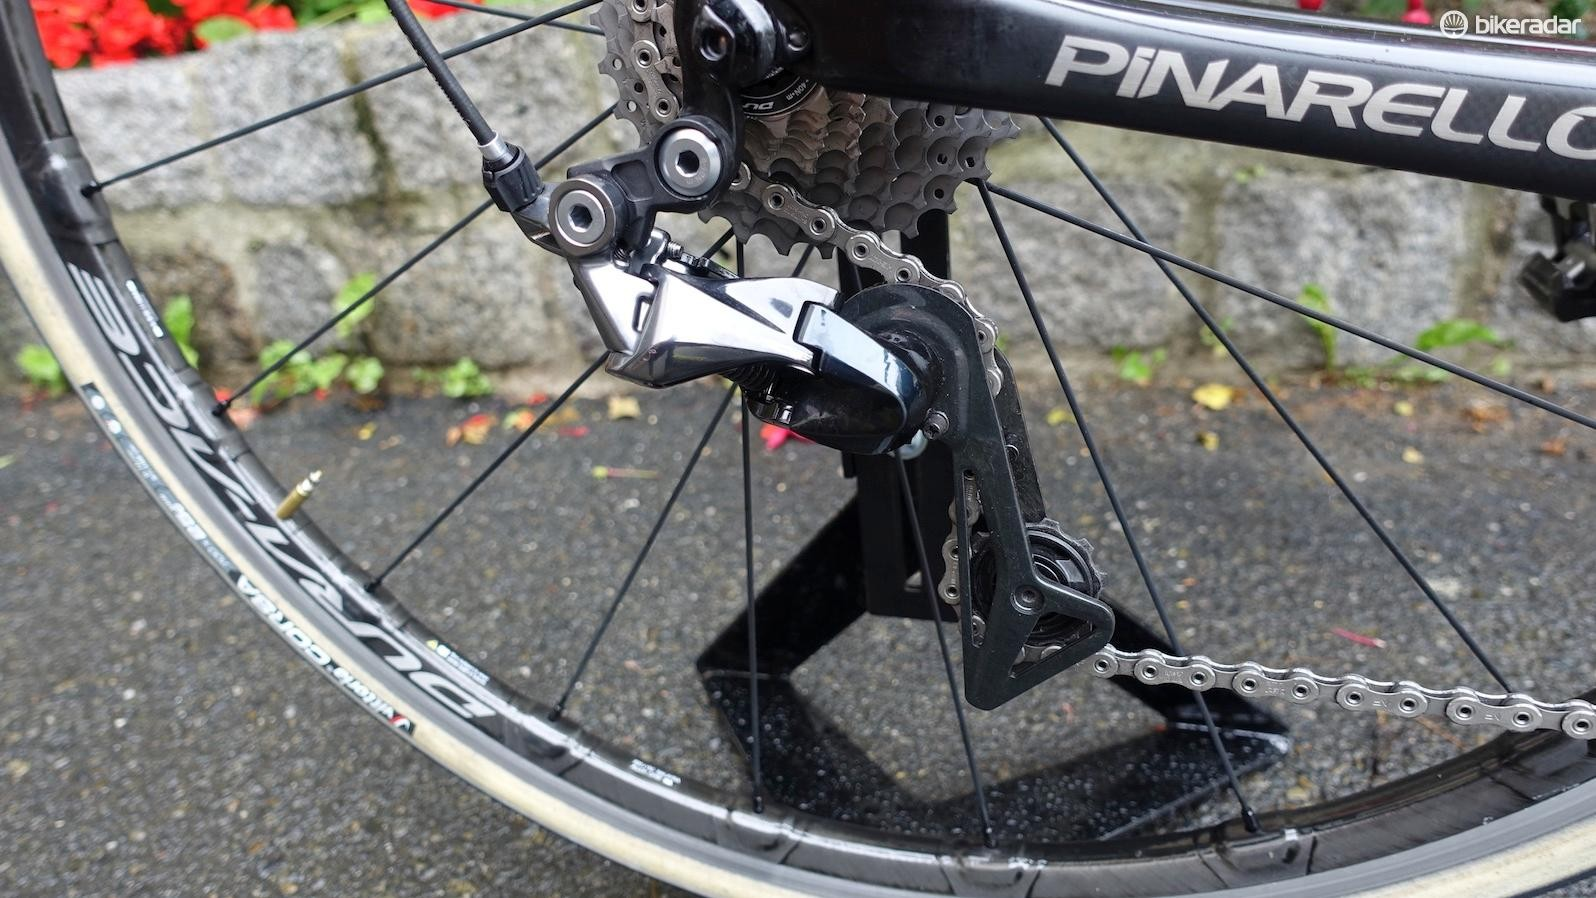 The new rear derailleur borrows Shimano's Shadow design from its mountain bike derailleurs. A longer cage enables the use of Shimano's new 11-30 cassette